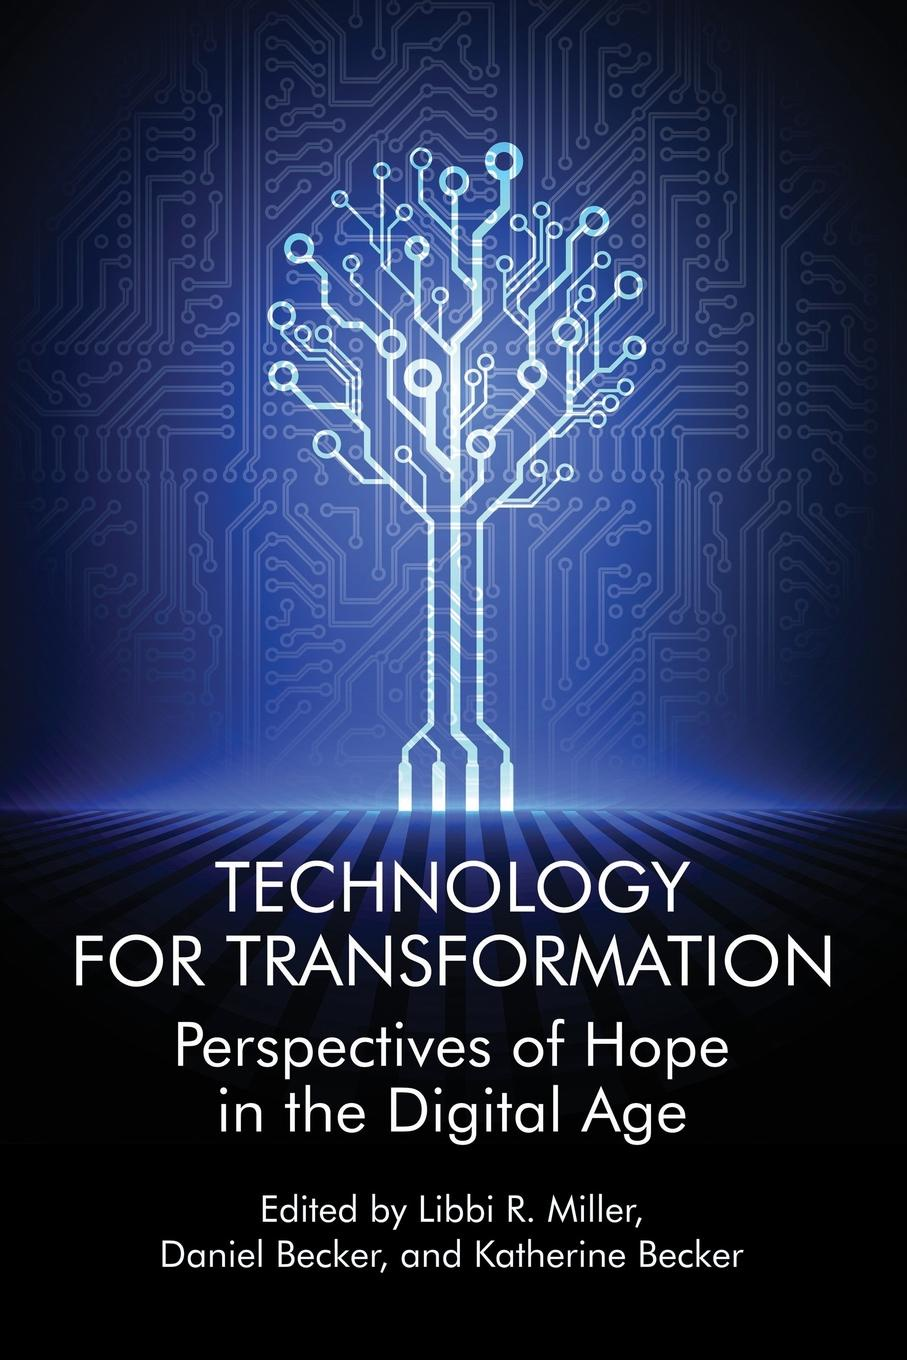 Technology For Transformation. Perspectives of Hope in the Digital Age kottler jeffrey a changing people s lives while transforming your own paths to social justice and global human rights